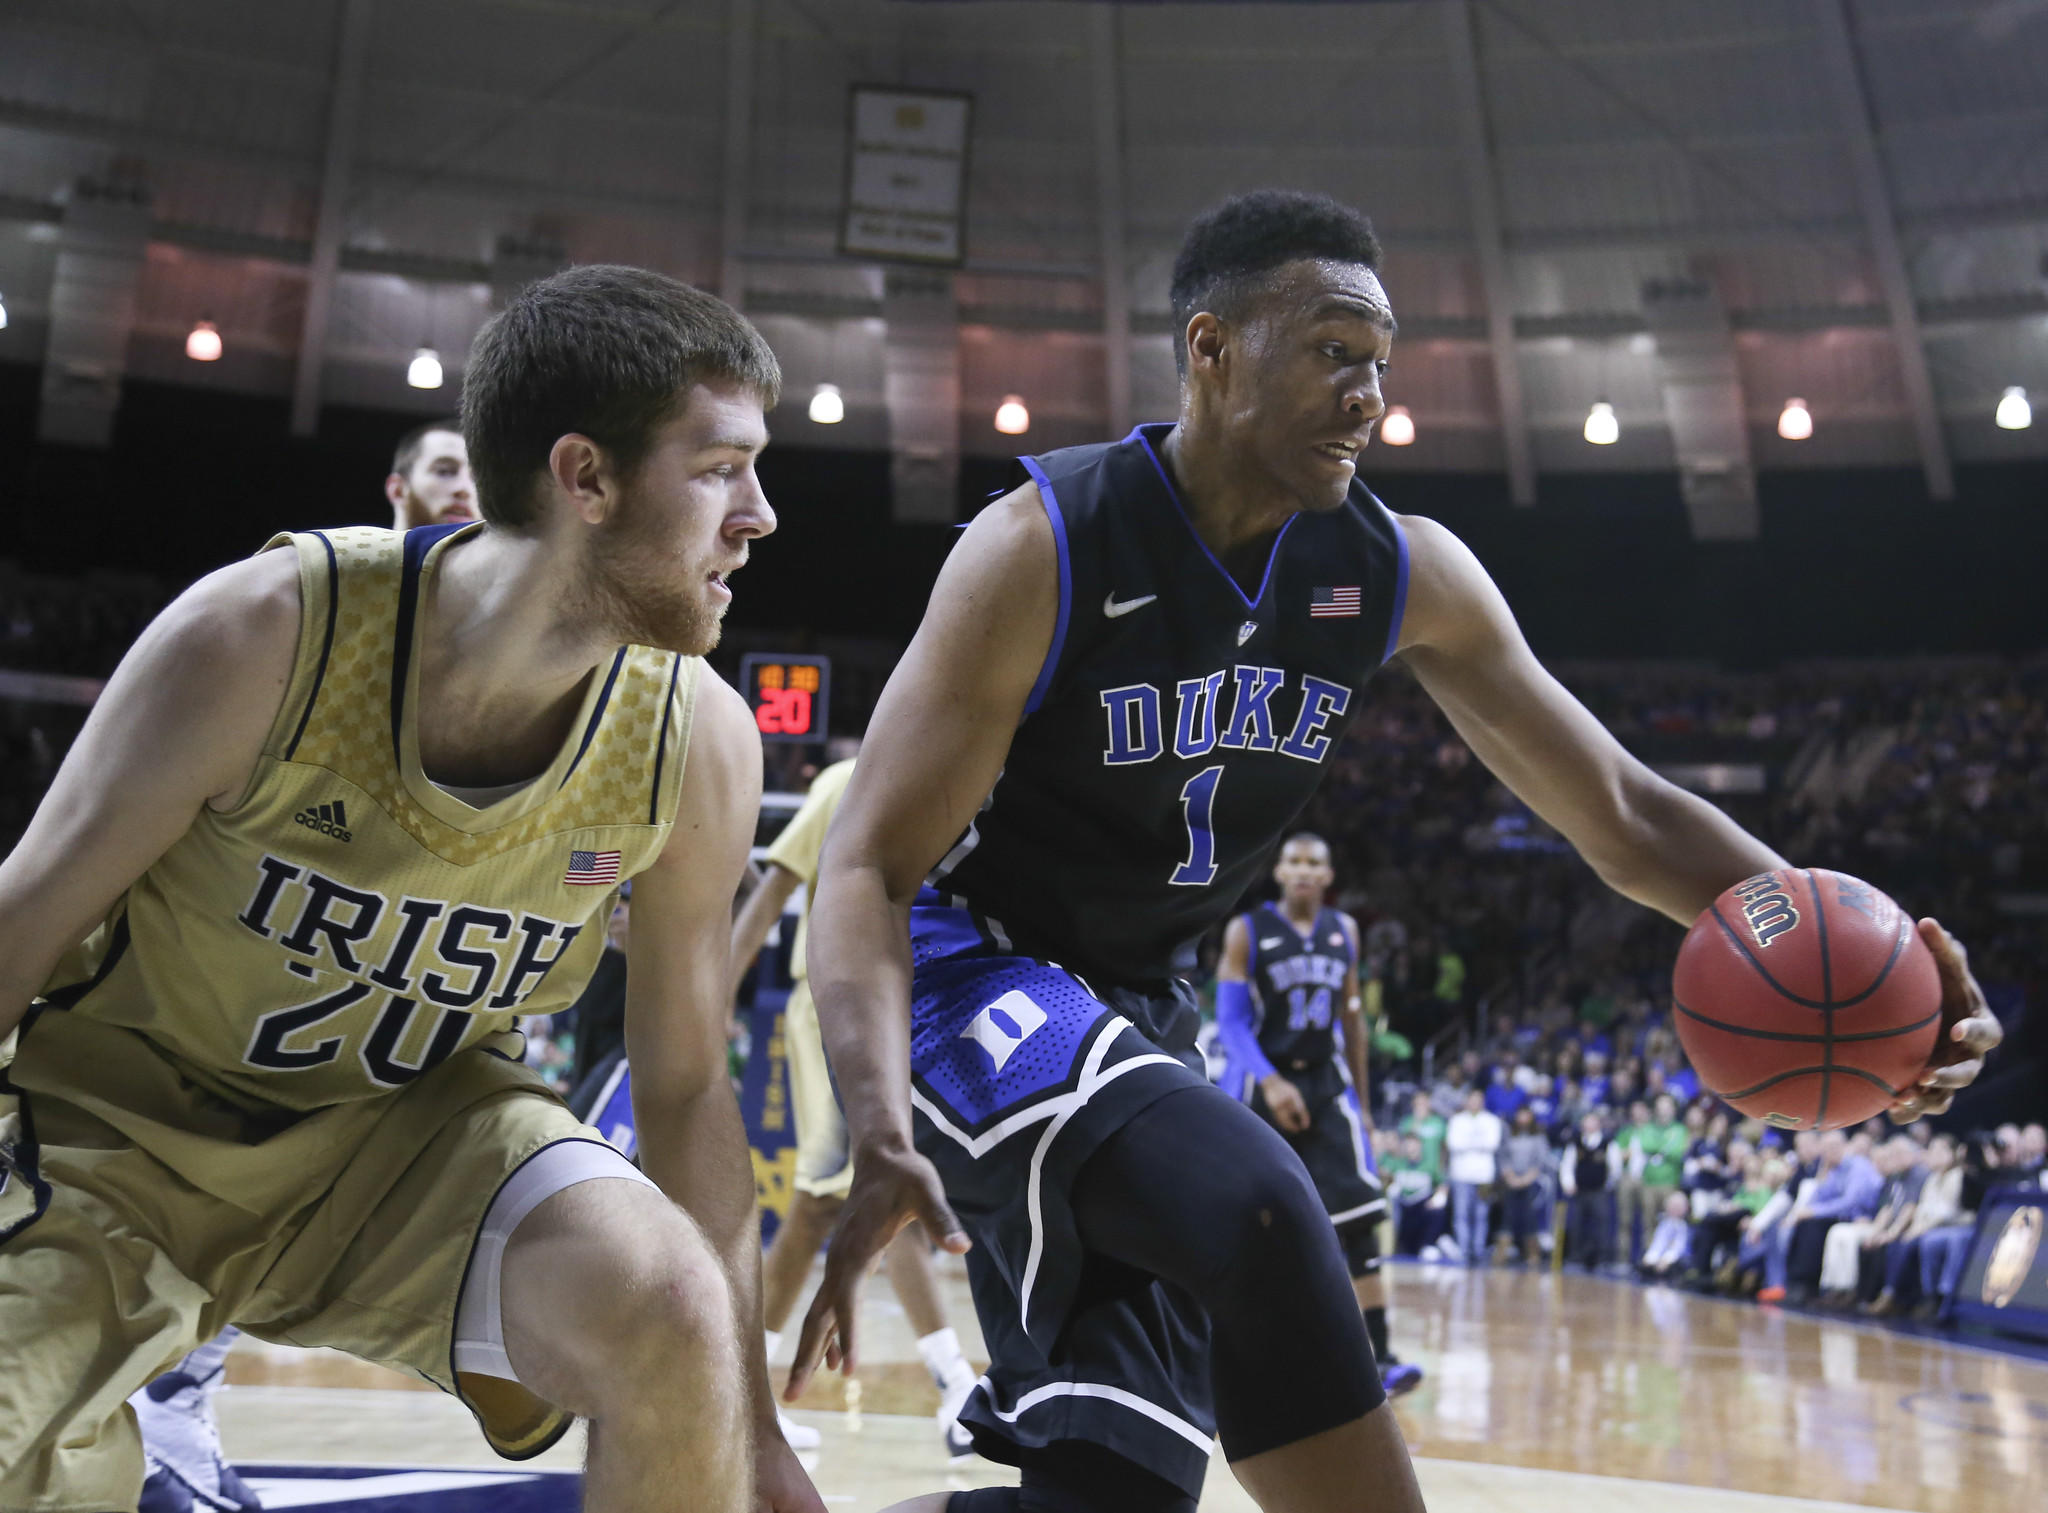 Duke Blue Devils forward Jabari Parker (1) drives around Notre Dame Fighting Irish forward Austin Burgett (20) during the first half of their game at the Purcell Pavilion at the Joyce Center.